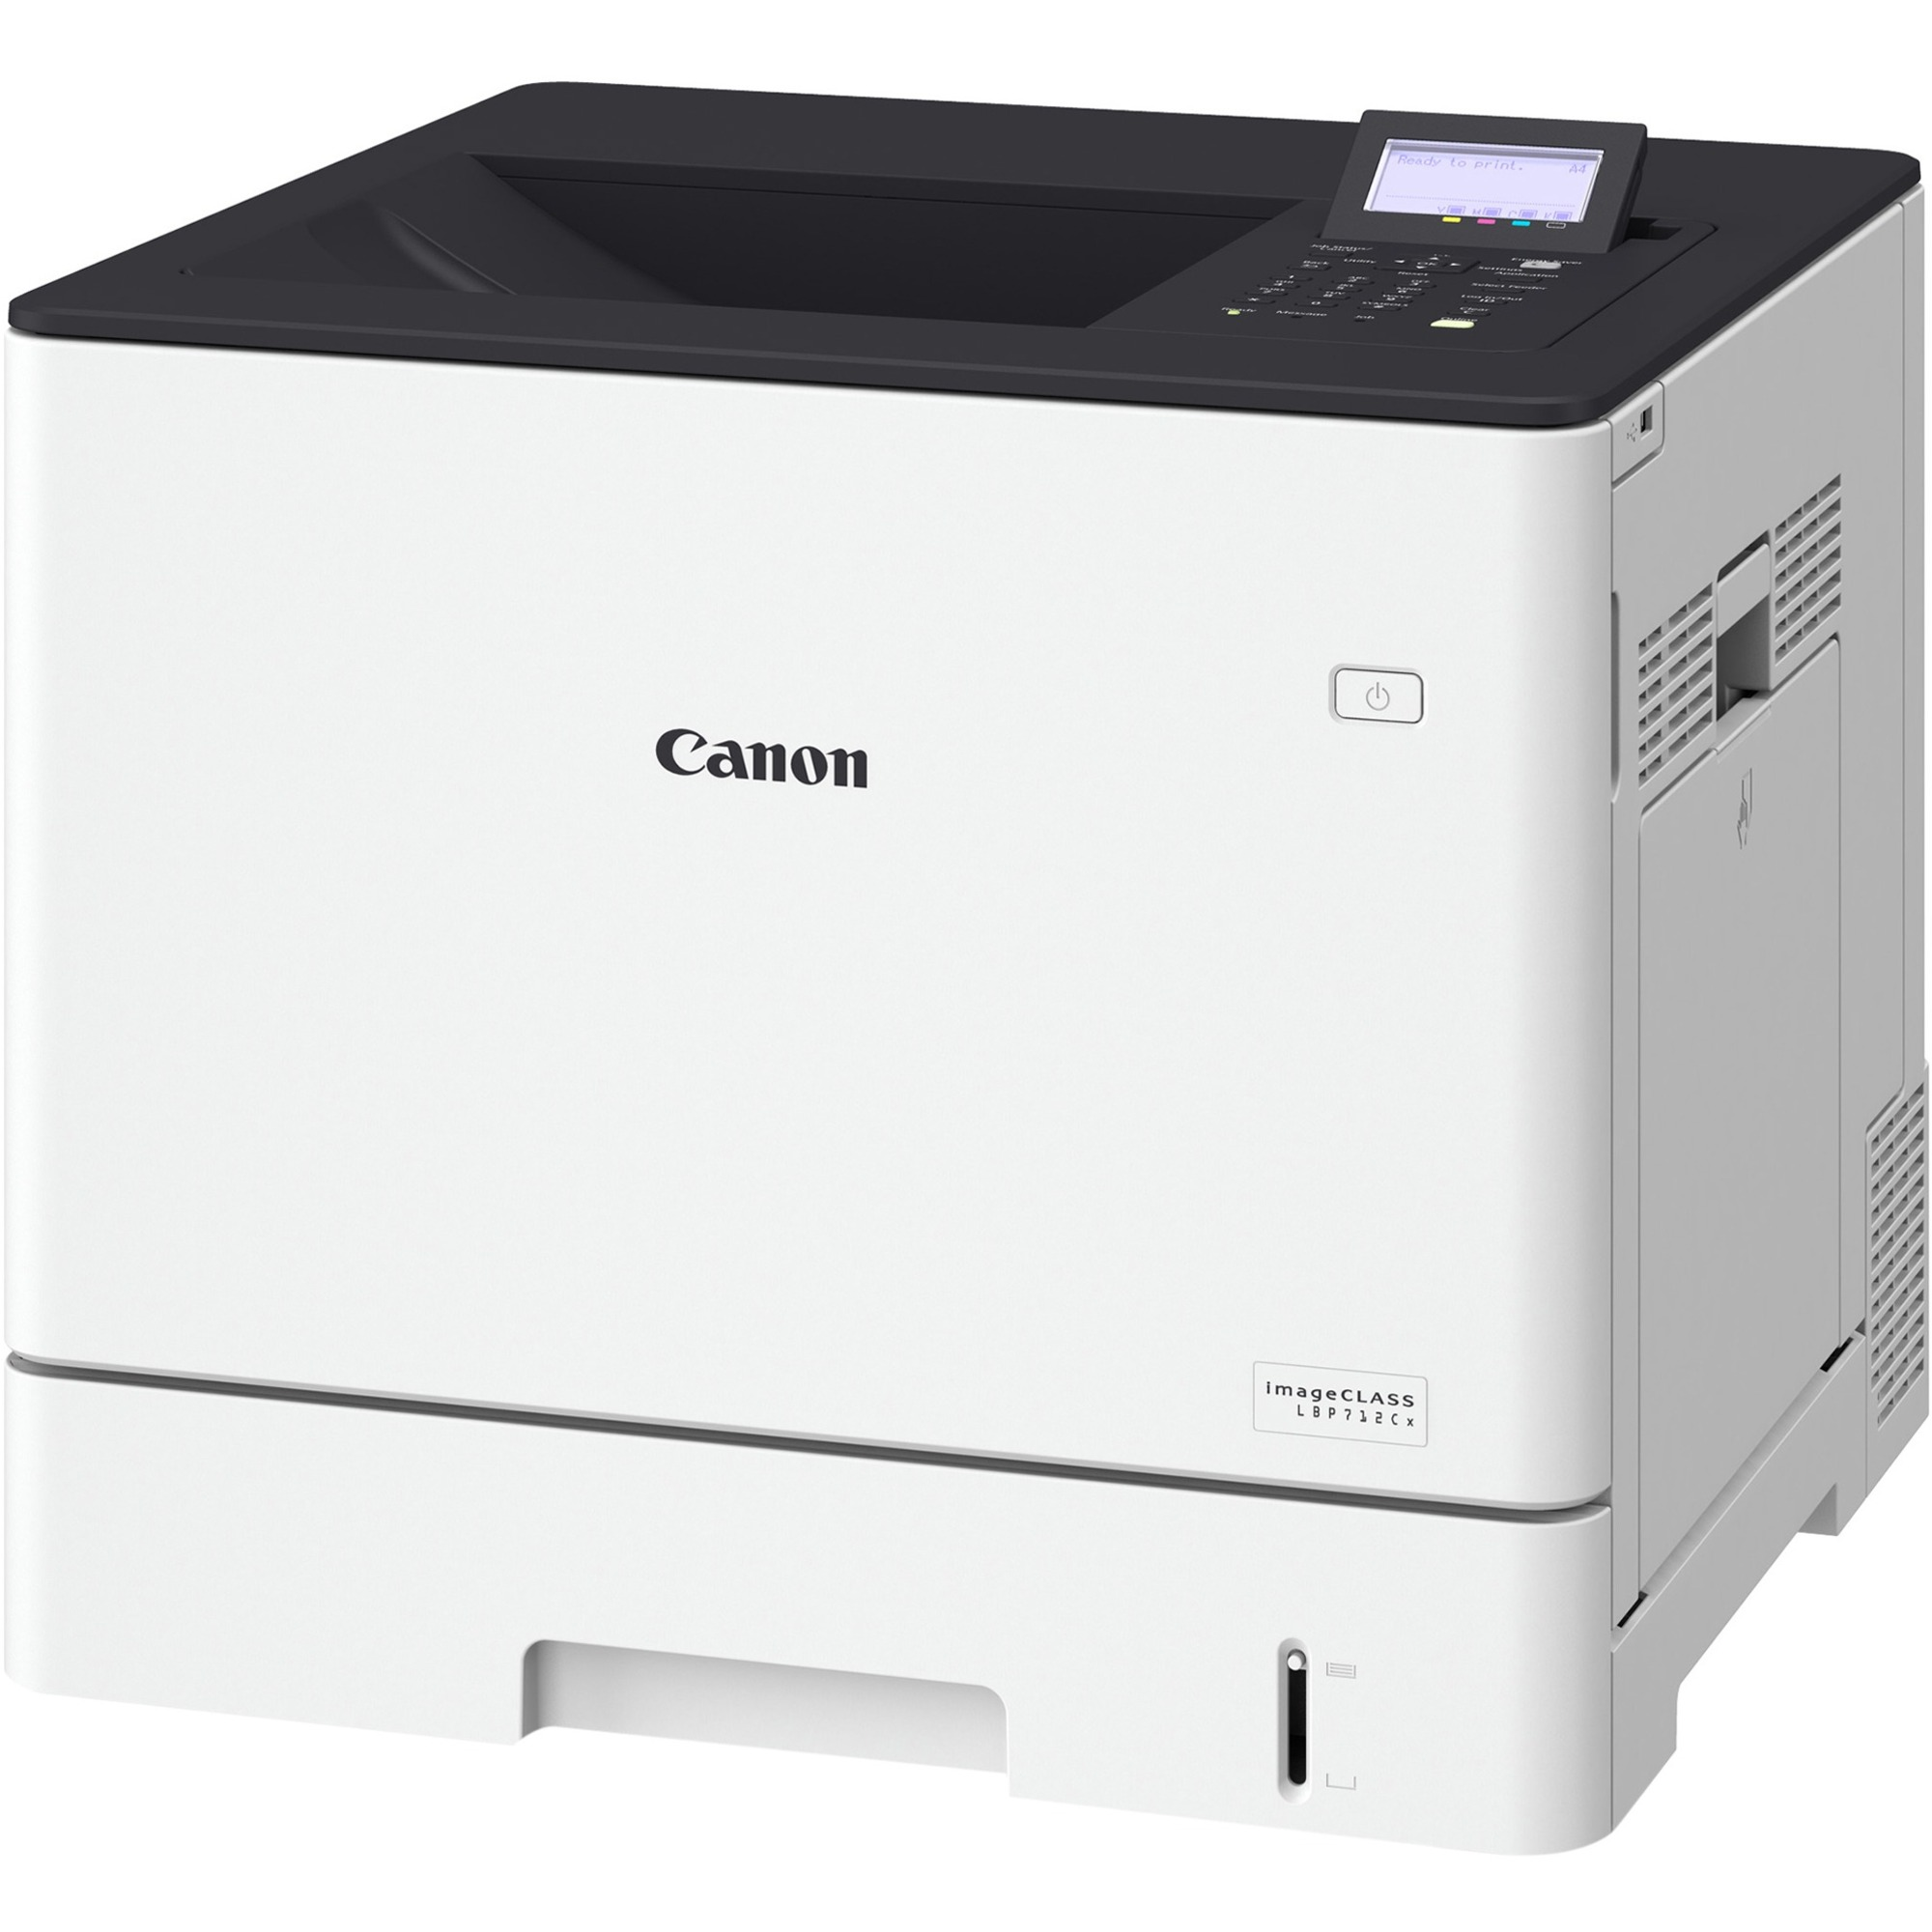 Canon i-SENSYS LBP LBP712Cx Laser Printer - Colour - 9600 x 600 dpi Print - Plain Paper Print - Desktop - 59 ppm Mono / 59 ppm Color Print - A5, Executive, A4, B5, C